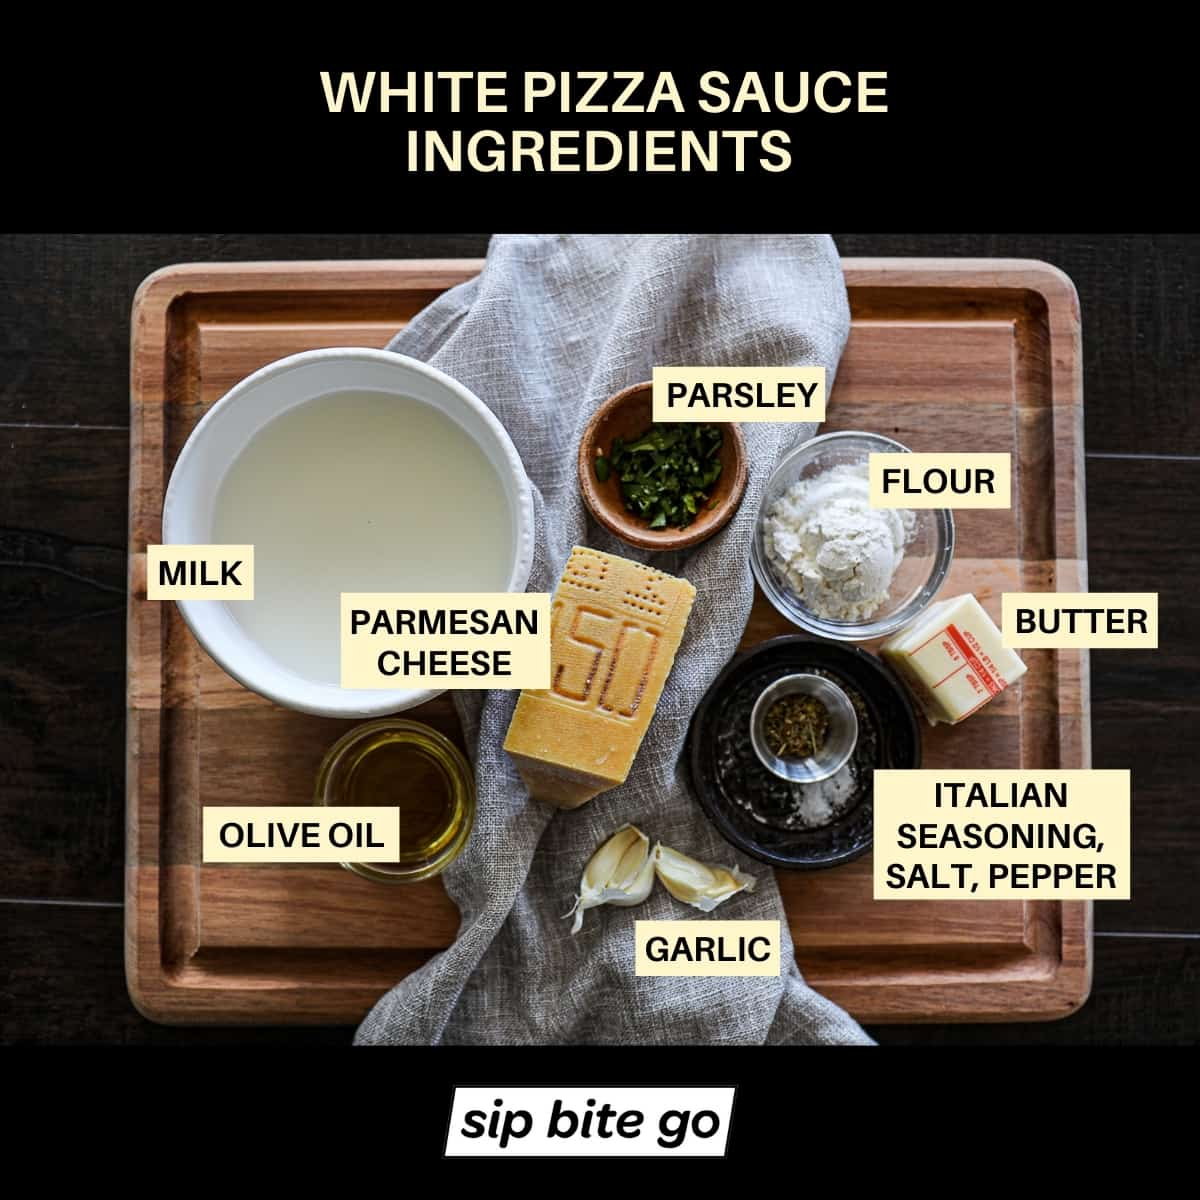 Philly Cheese Steak Pizza Sauce Ingredients Graphic with chart.